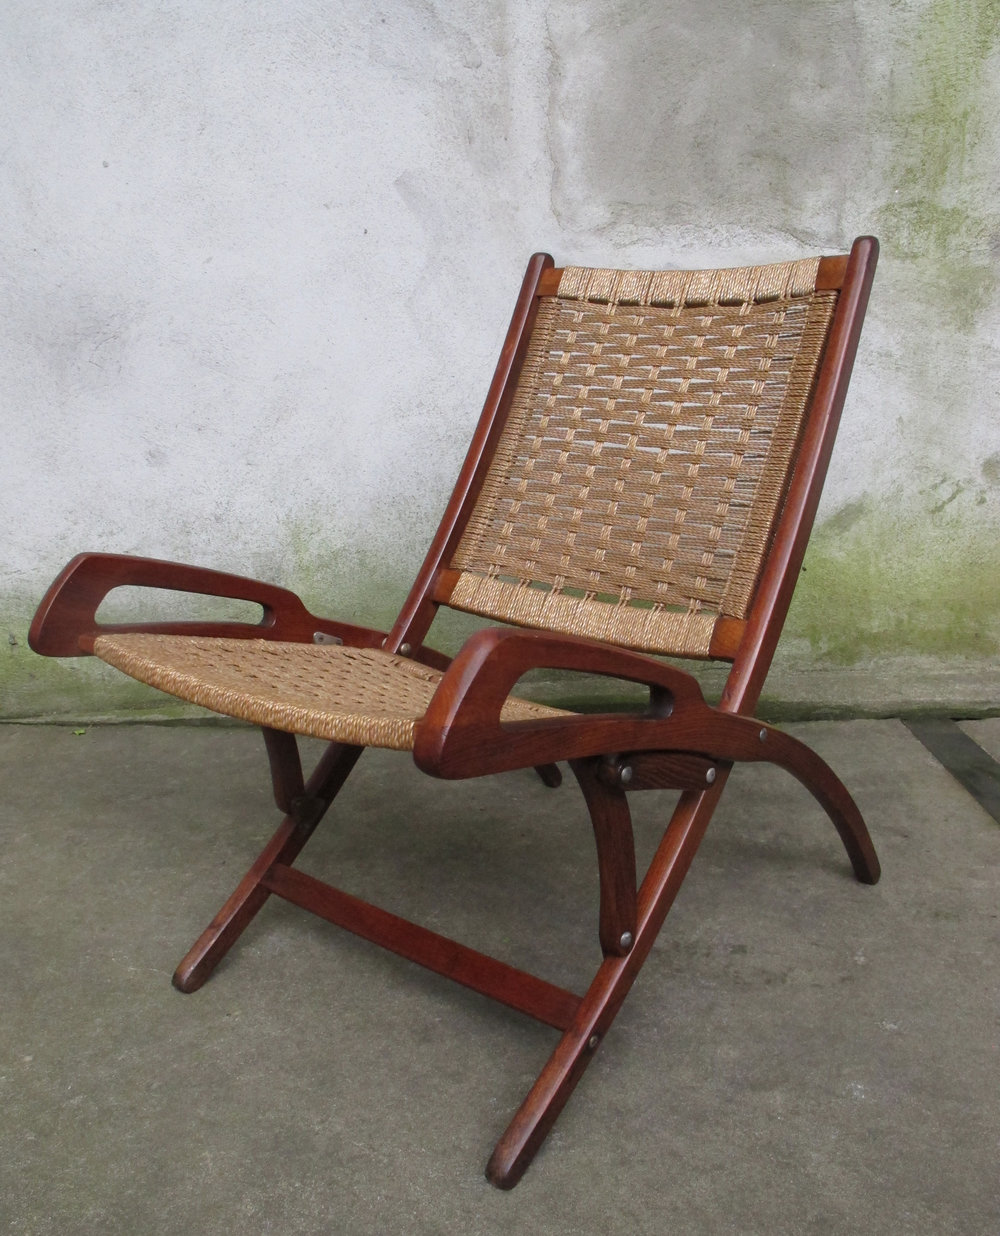 HANS WEGNER STYLE DANISH MODERN FOLDING ROPE LOUNGE CHAIR